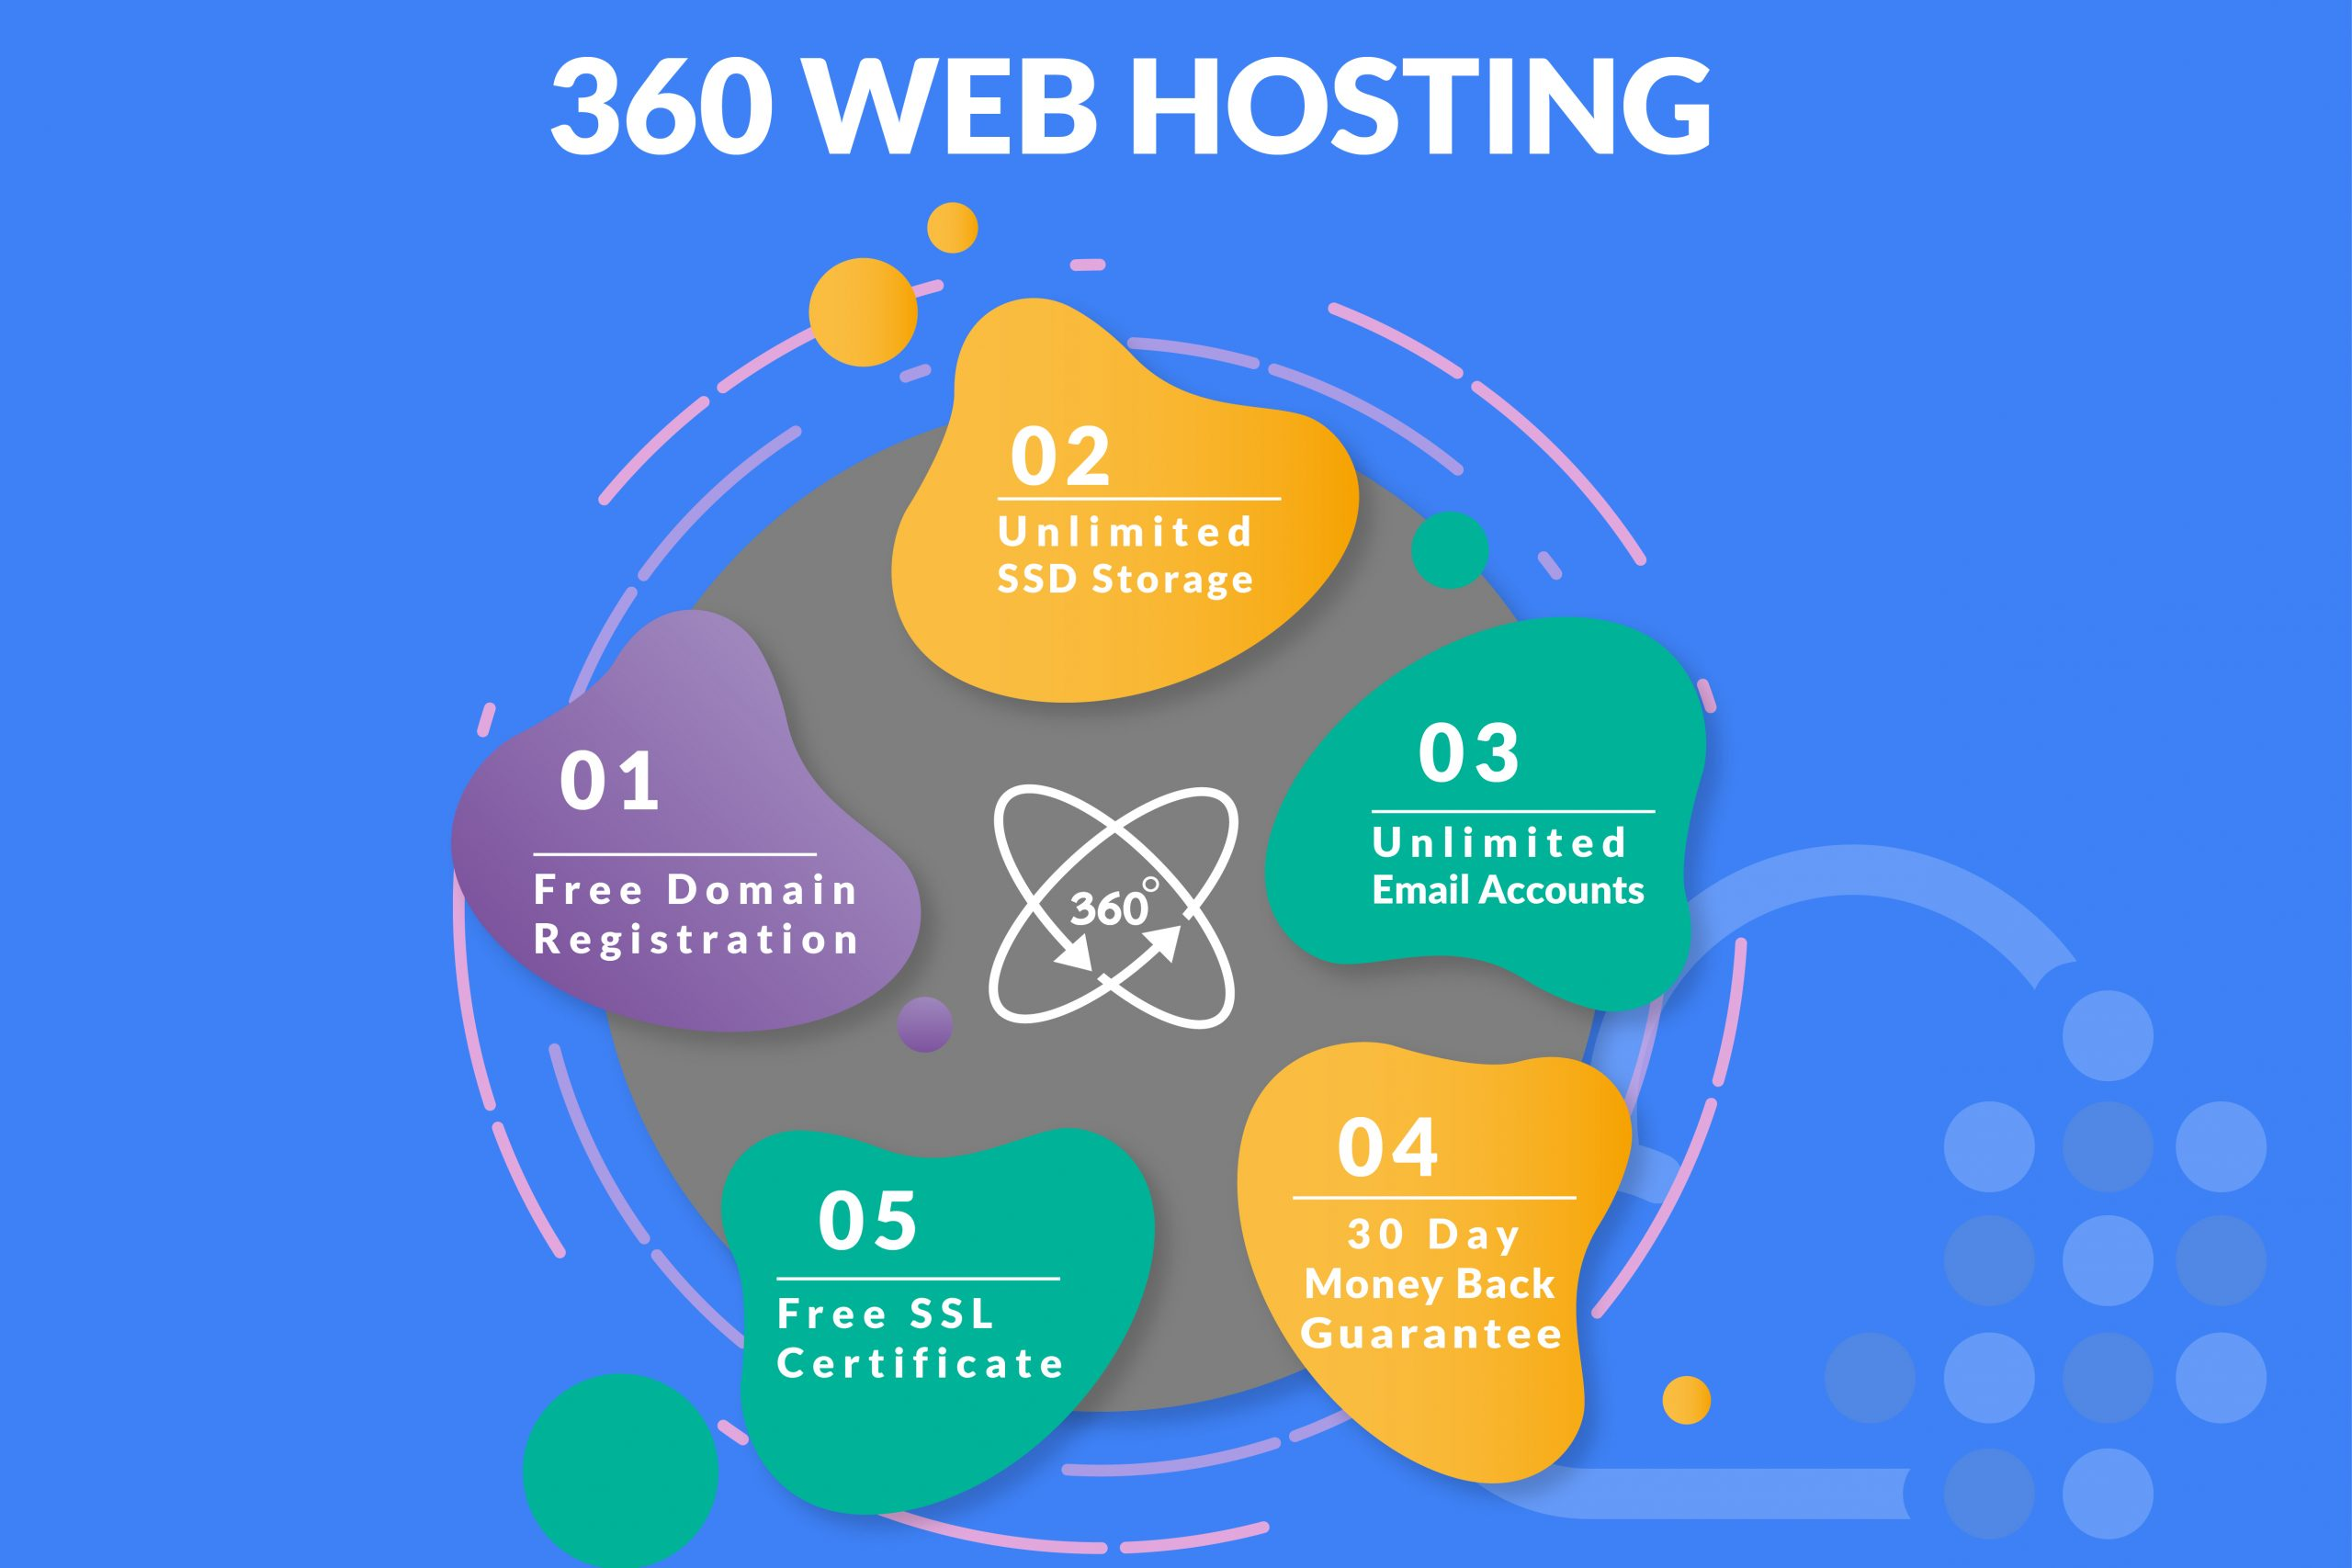 360 Website Hosting, Dubai, Abu Dhabi, UAE